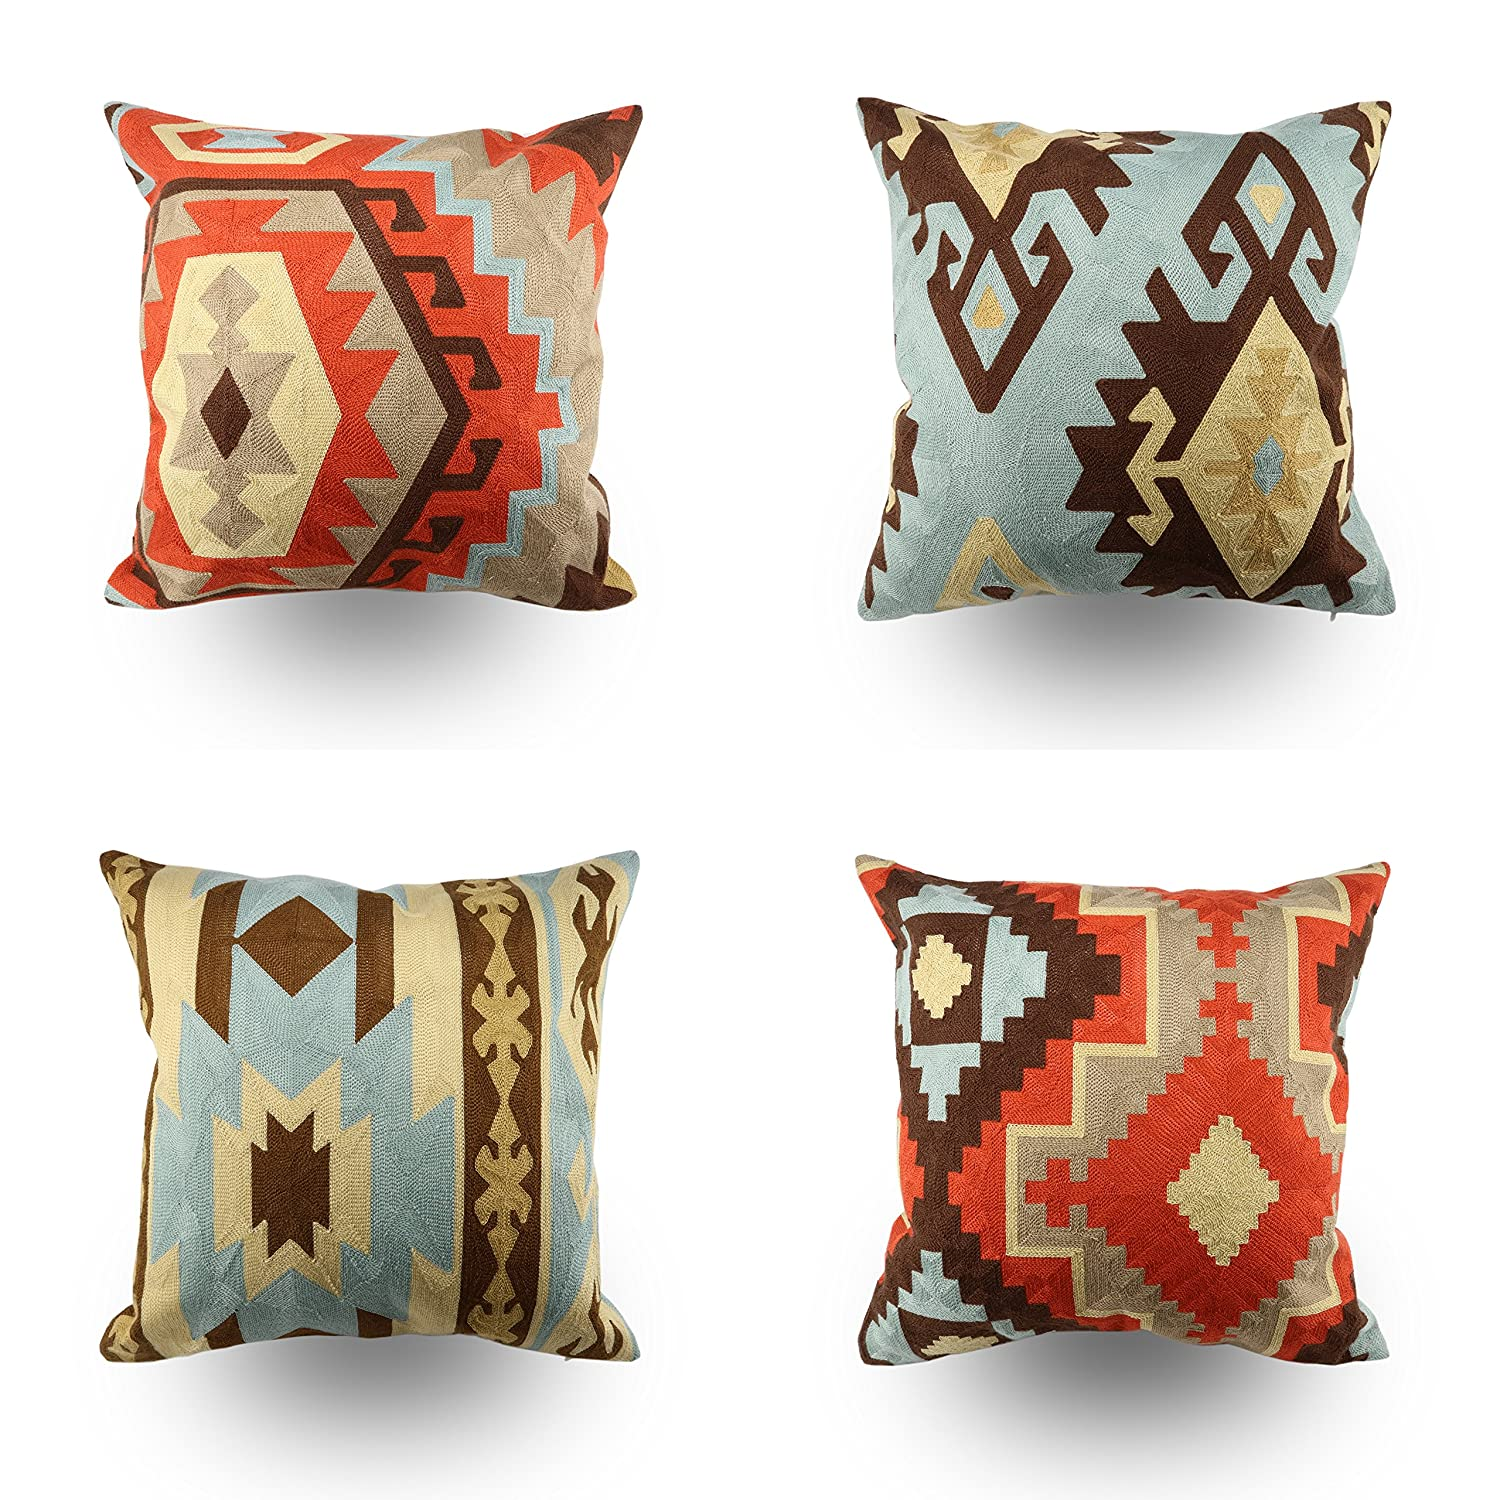 Amazon Com Hodeco Embroidery Throw Pillow Covers 18x18 Inches